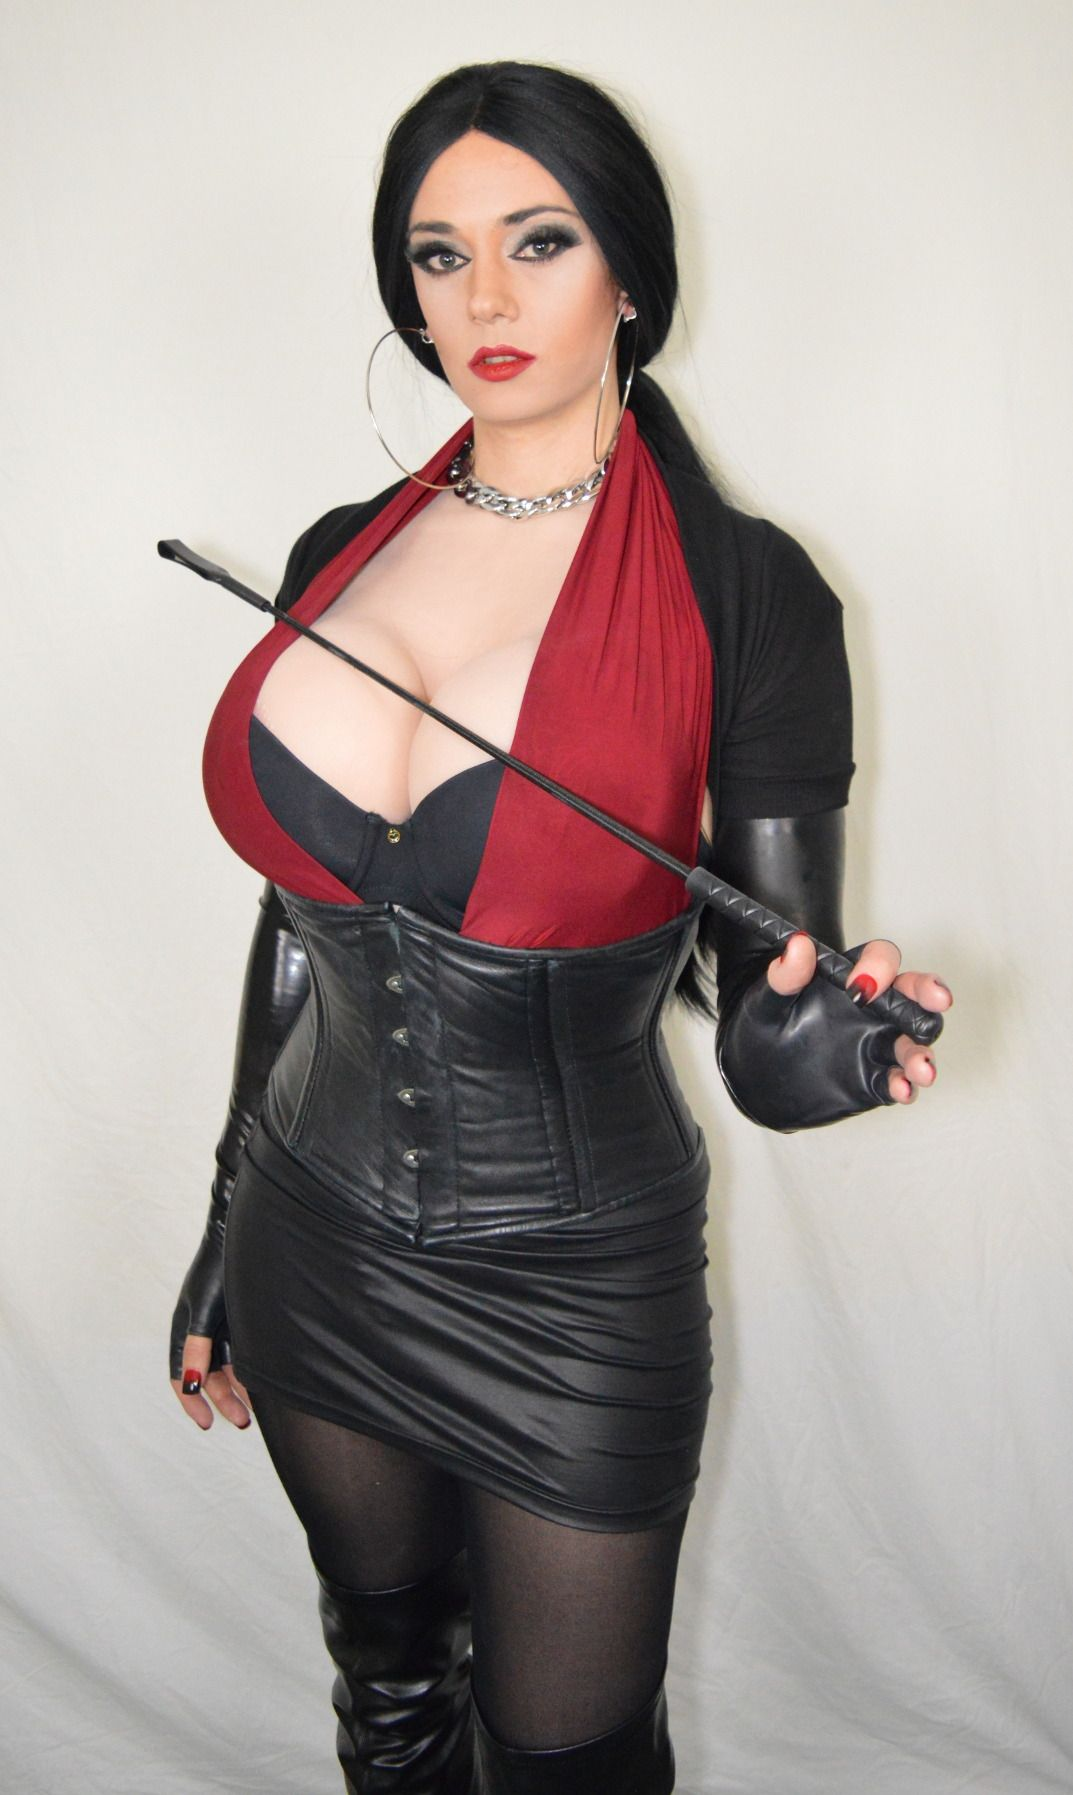 Can find lady js femdom boston understand you